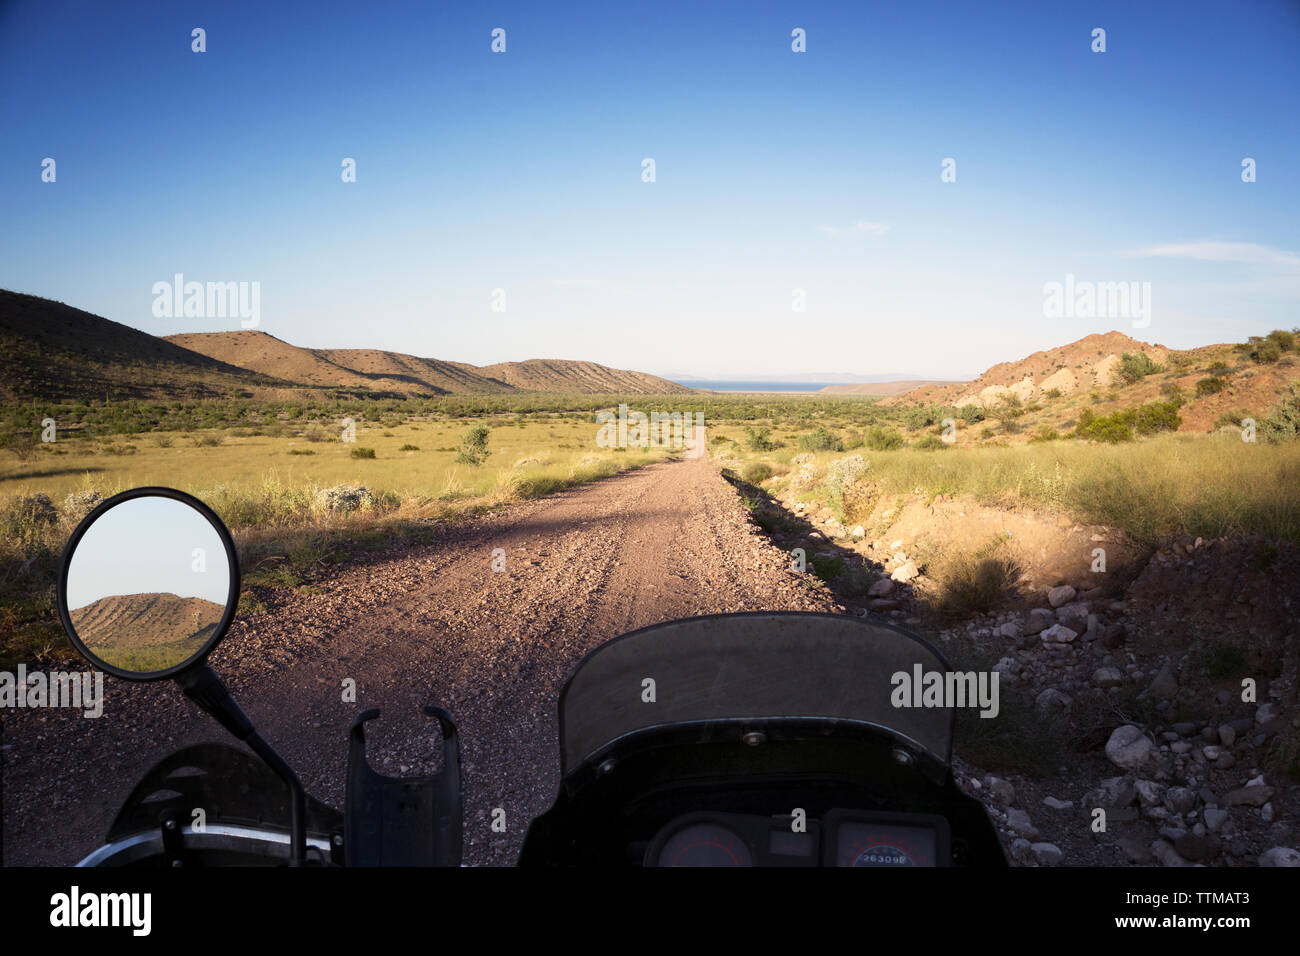 View of field from motorcycle - Stock Image